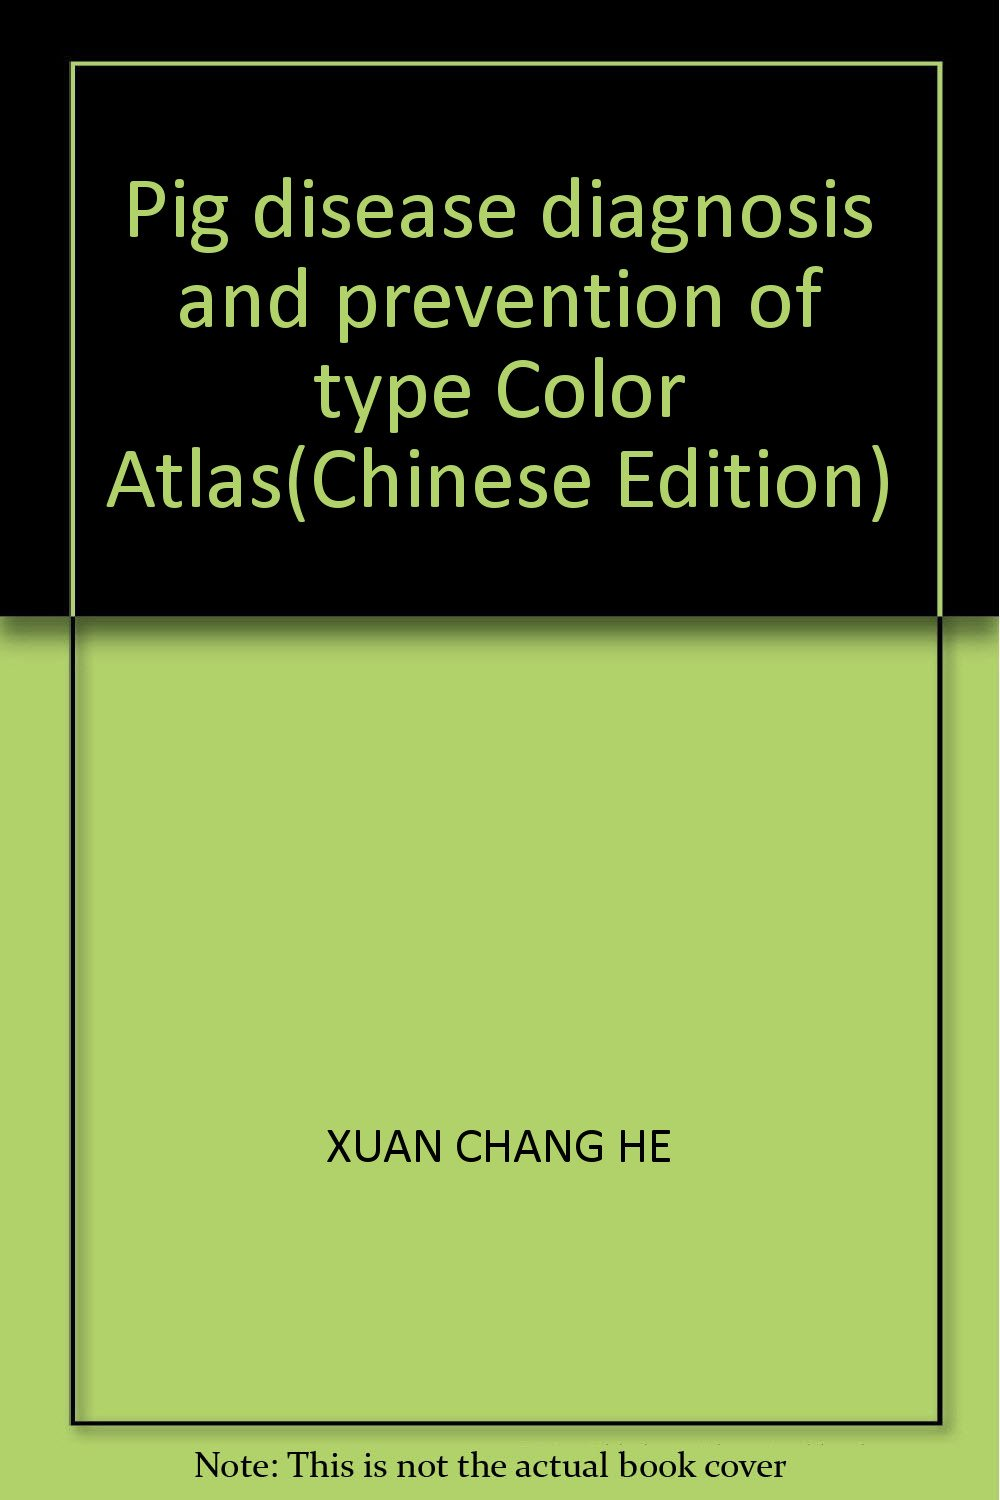 Download Pig disease diagnosis and prevention of type Color Atlas(Chinese Edition) PDF